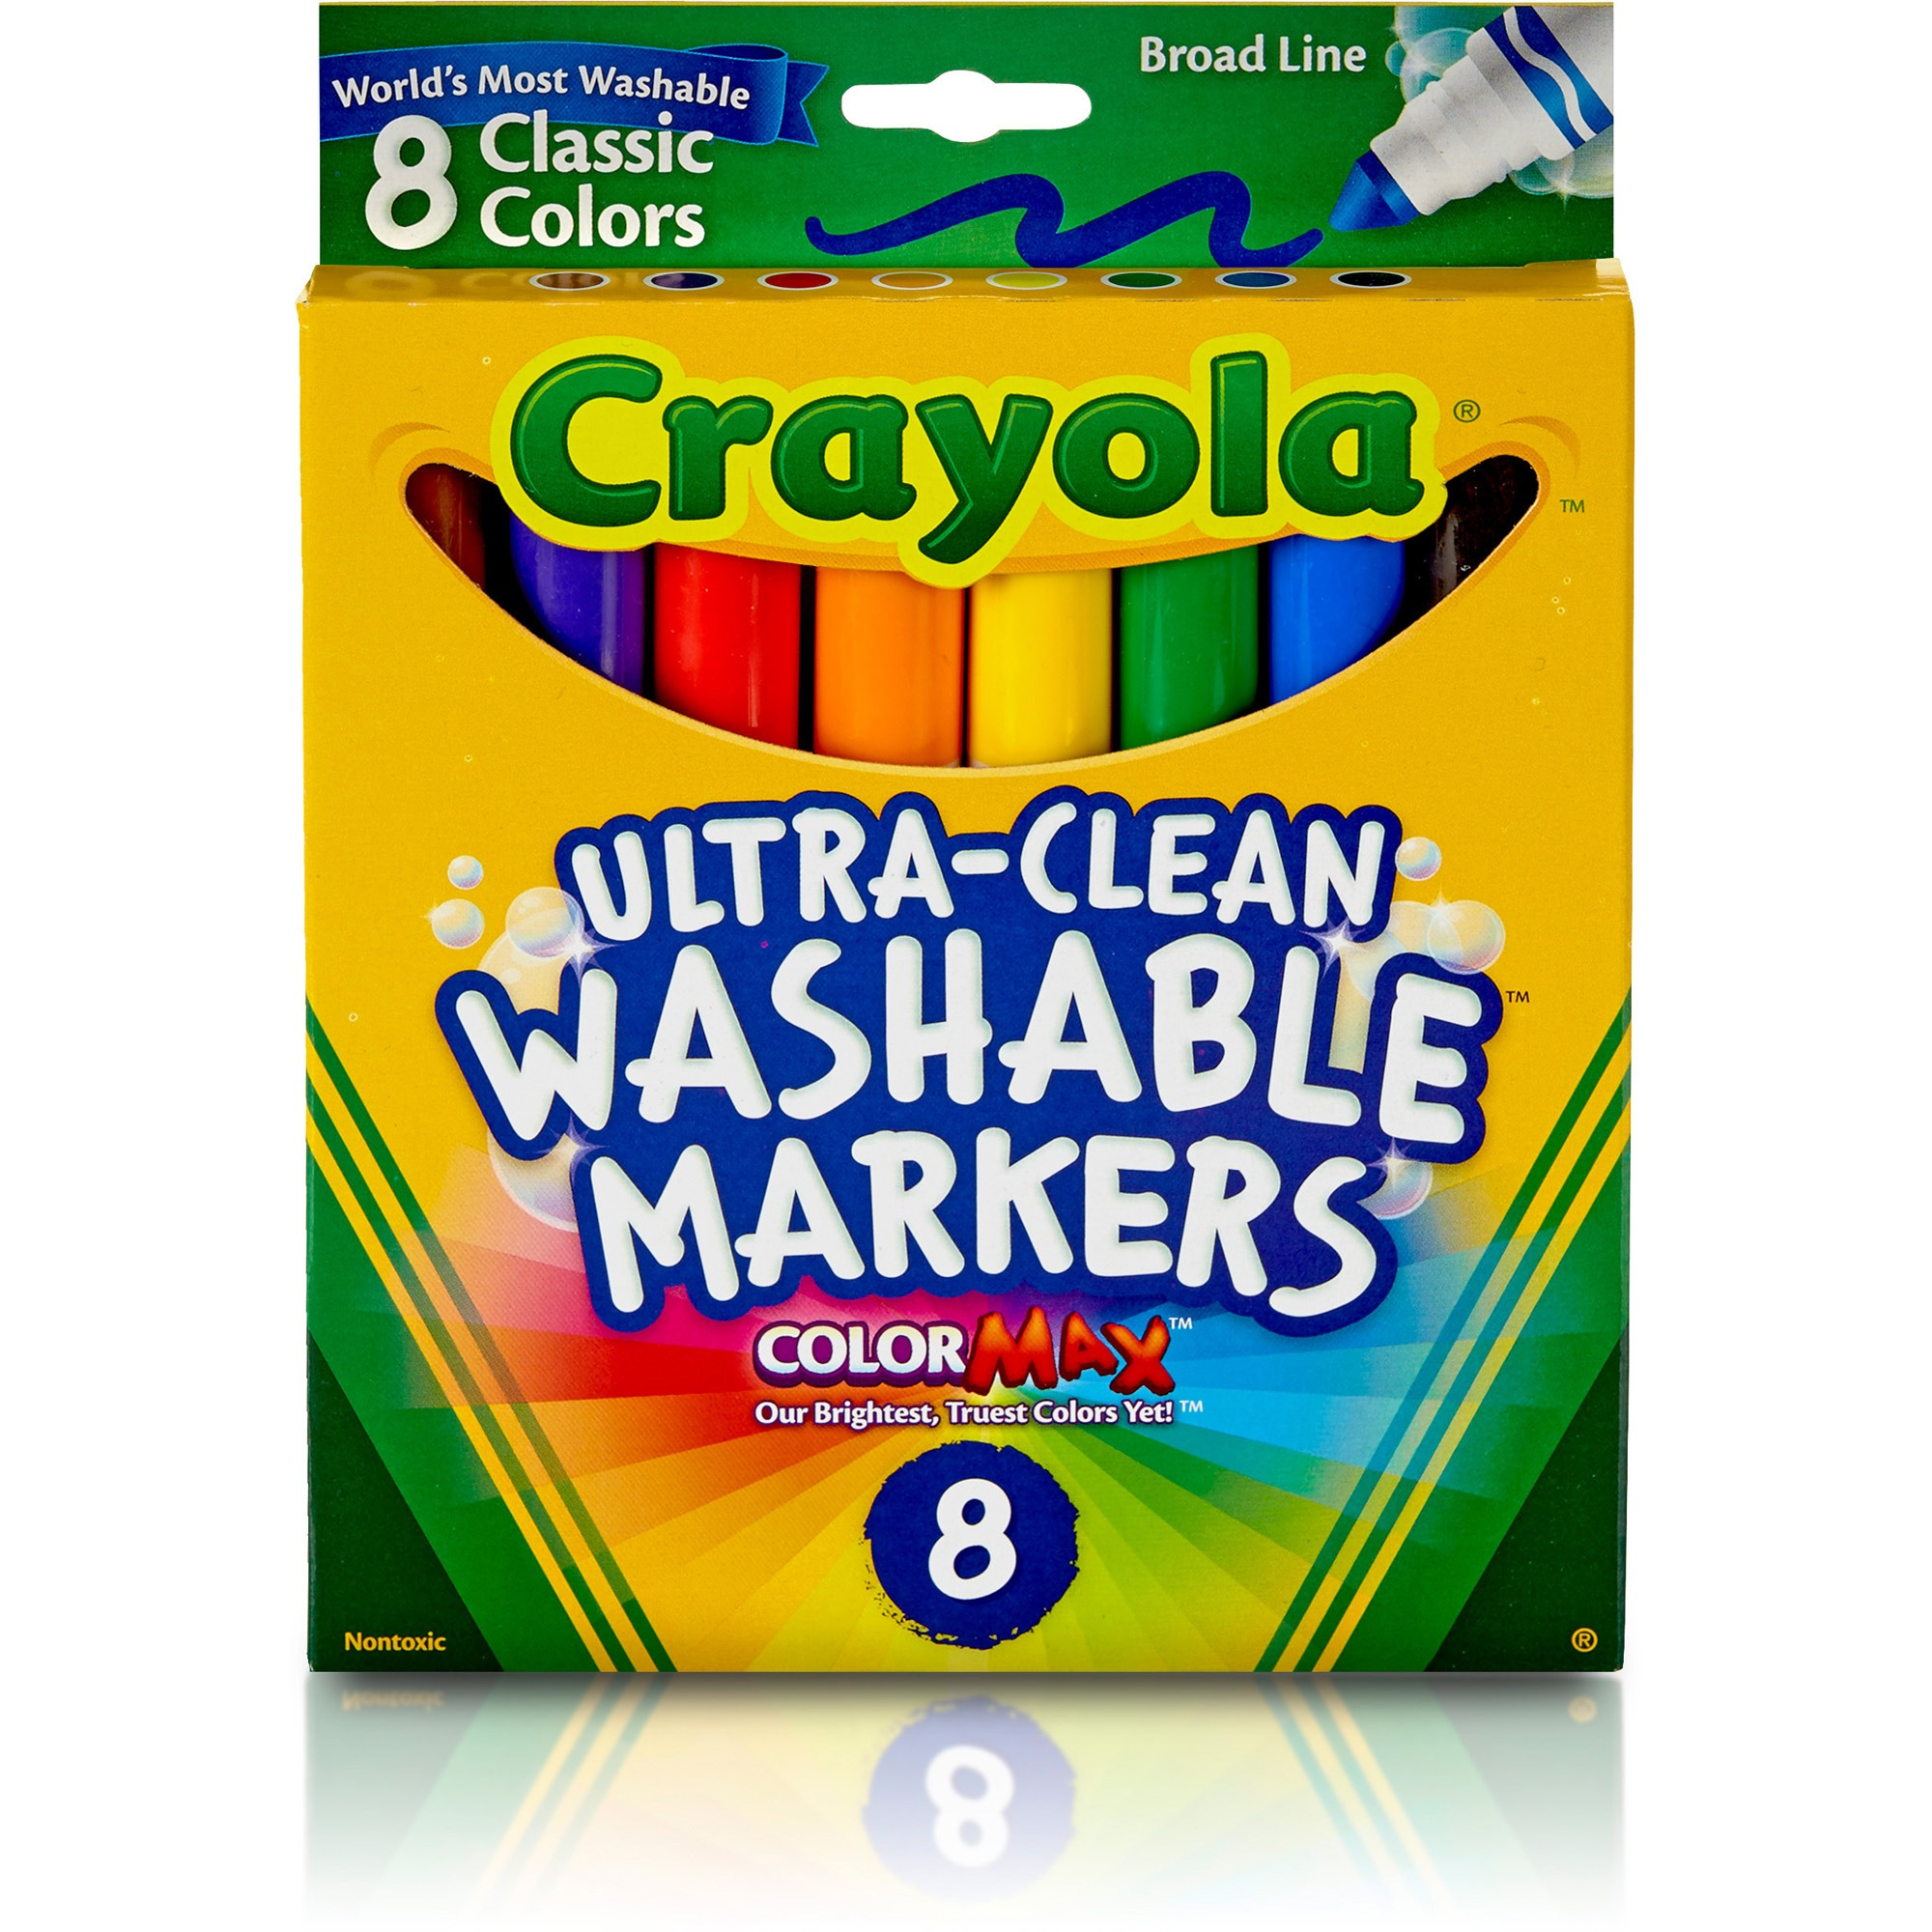 Crayola Ultra-Clean Washable Broad Line Markers, 8 Count